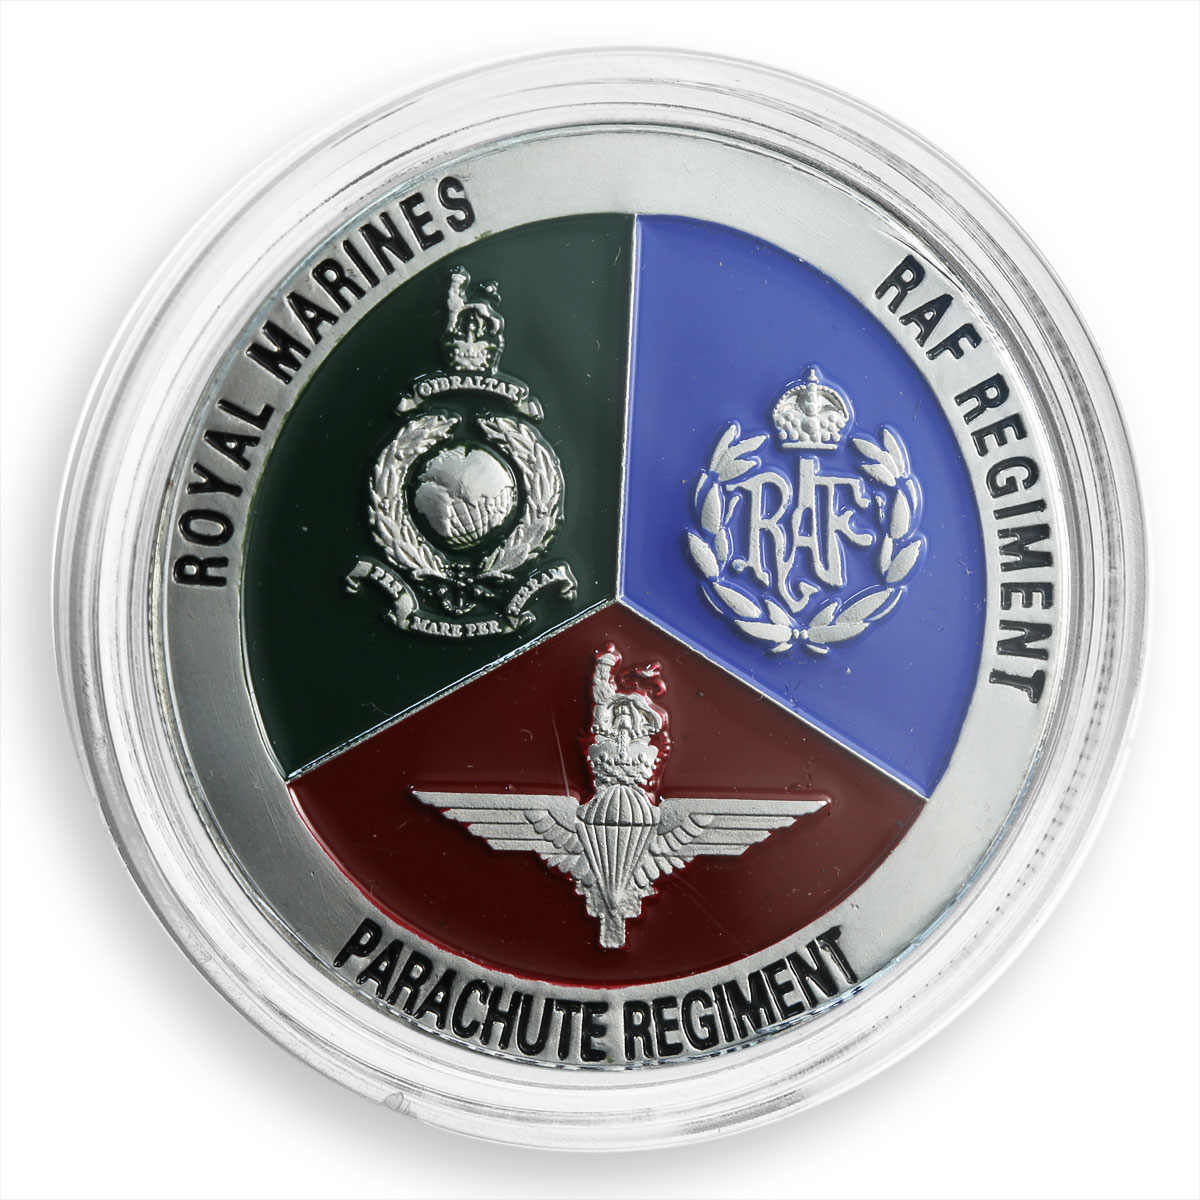 British riot, Royal Navy, Marines, support group, sword, token